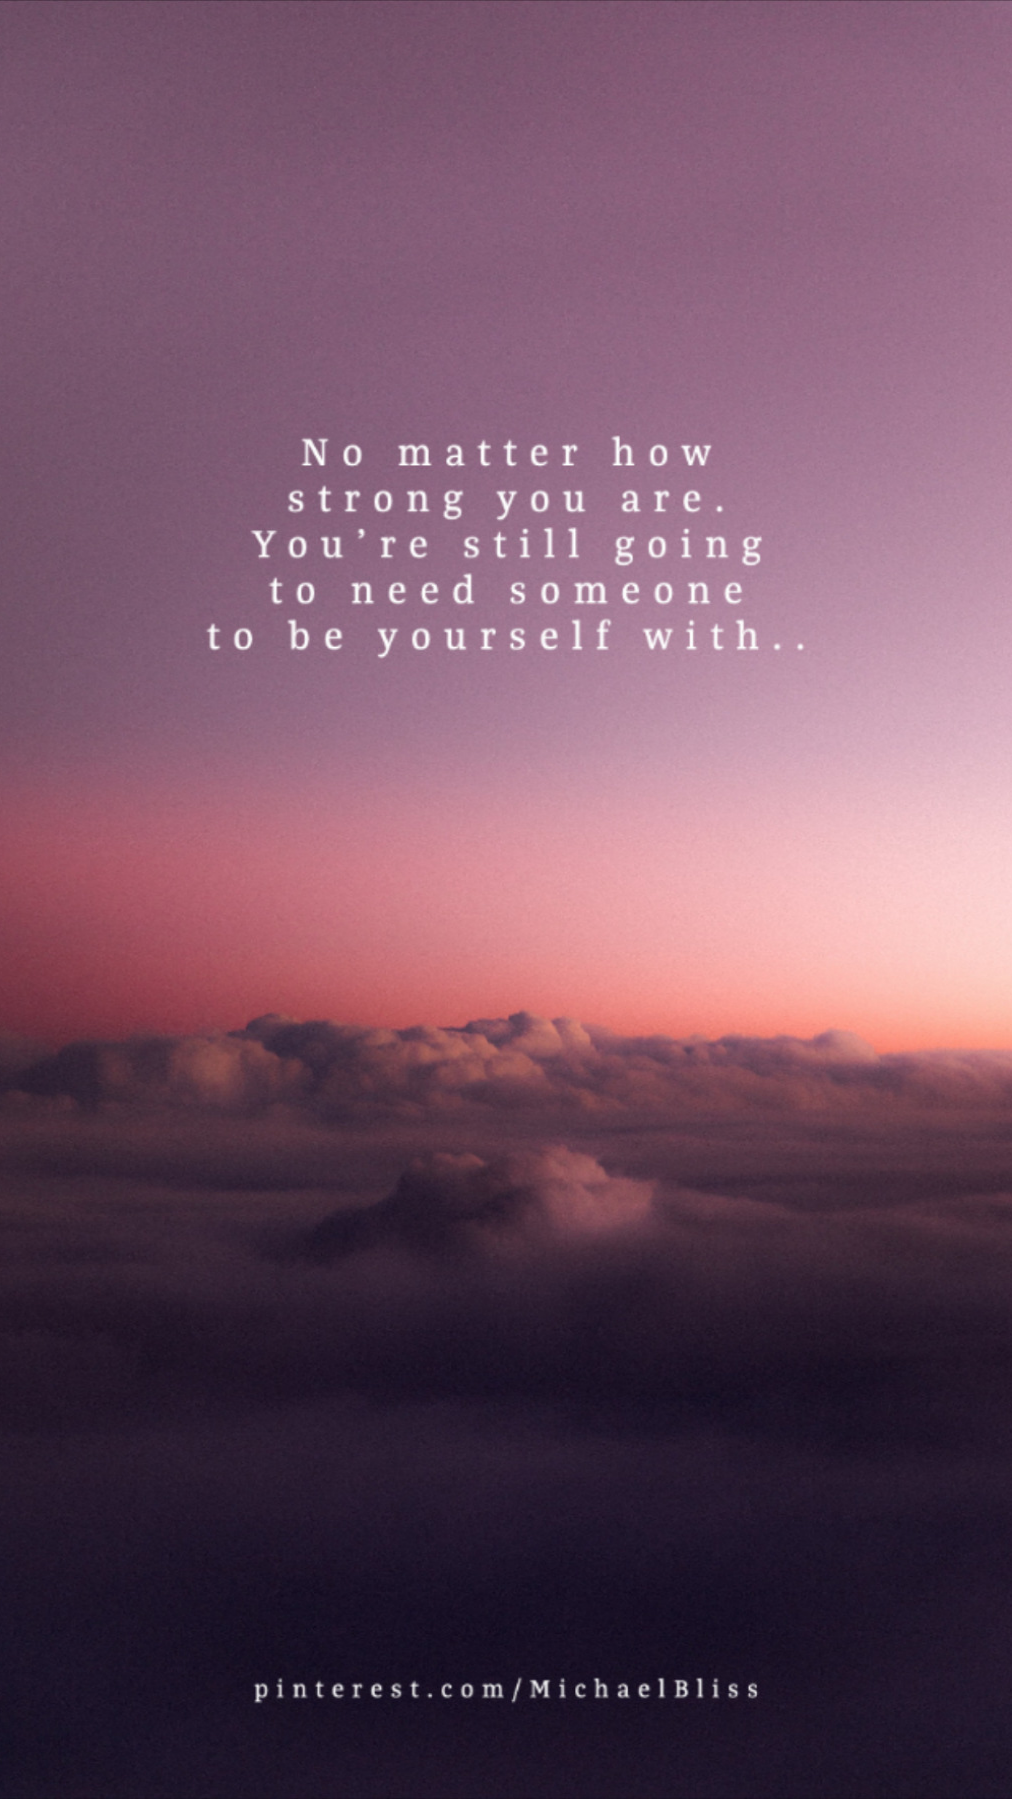 No matter how strong you are..